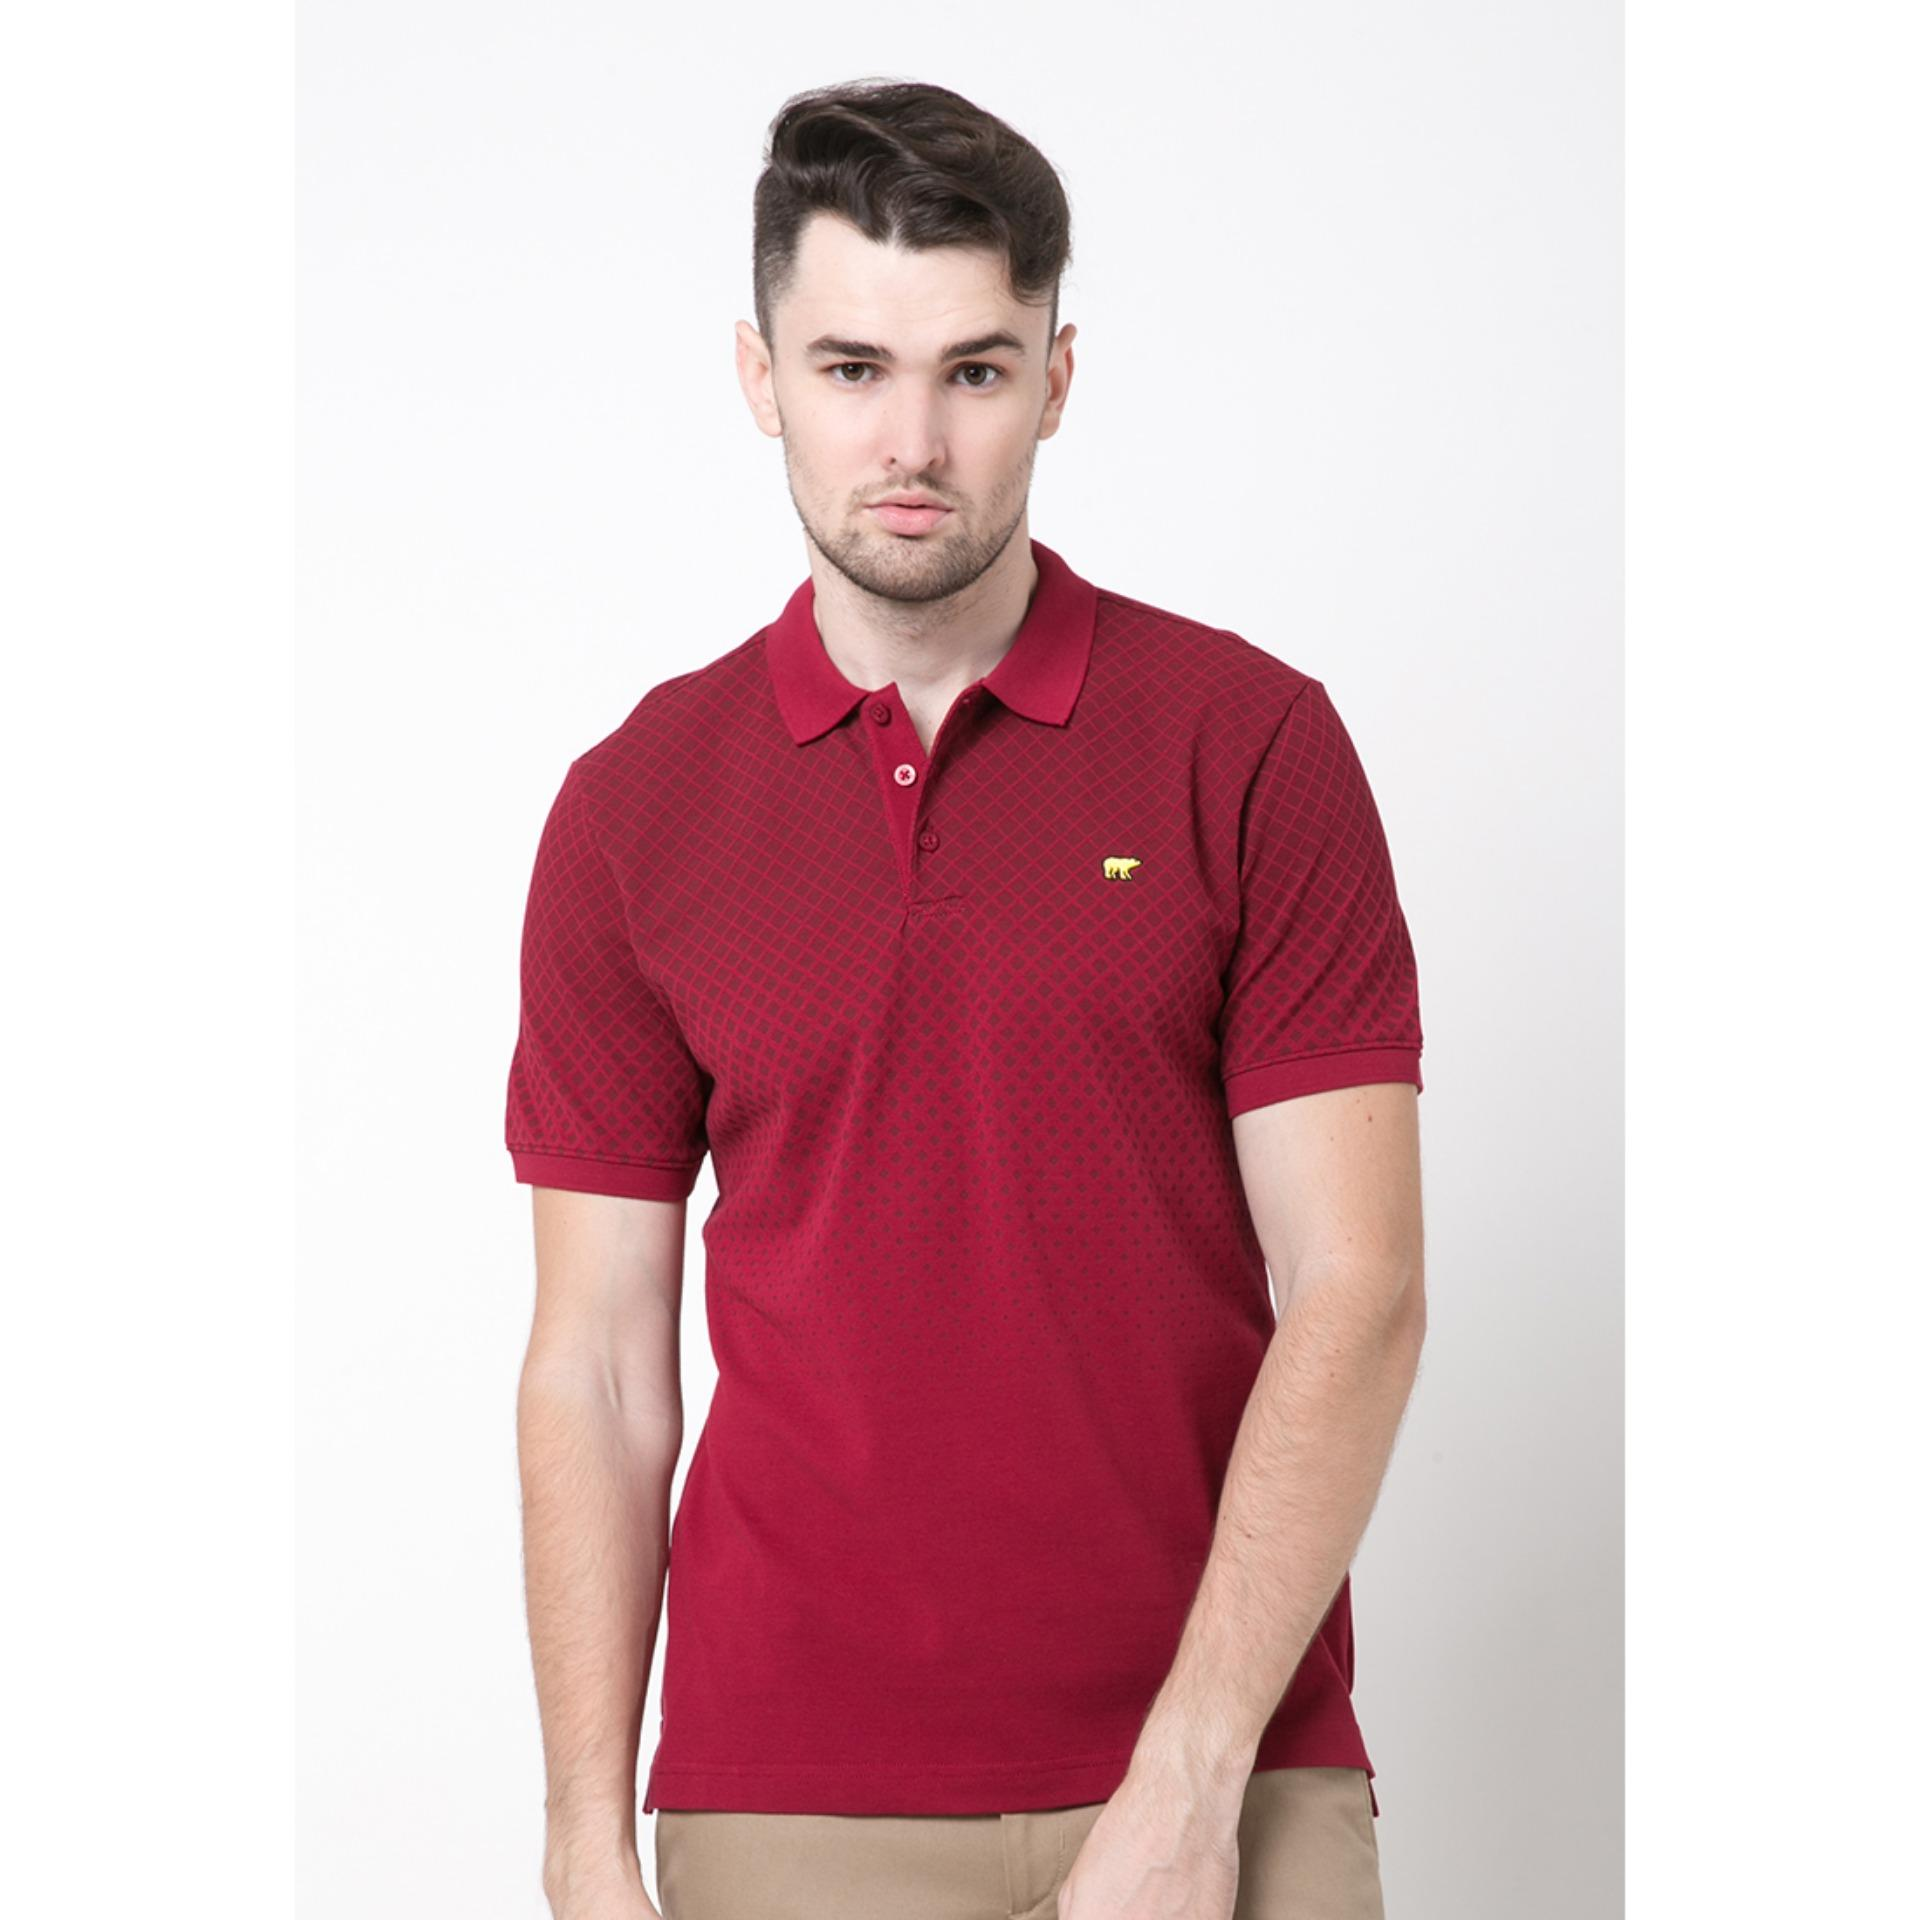 Promo Jack Nicklaus Lomond Burgundy Polo Shirt Jack Nicklaus Terbaru